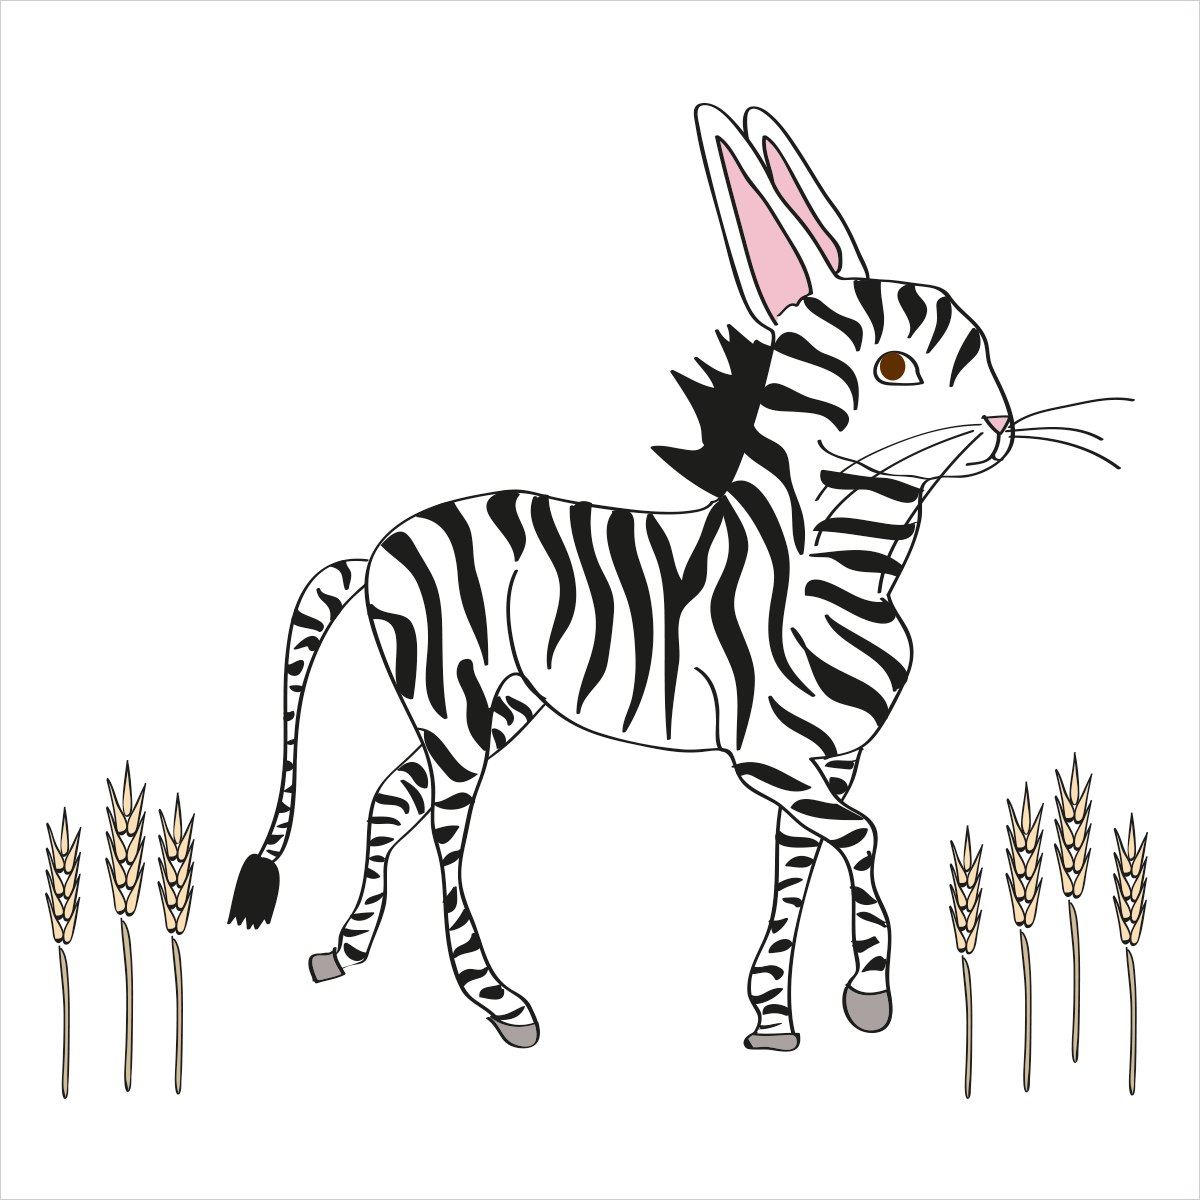 Her stripes will make you dizzy and she loves to multiply. She is ZEBRABUNNY